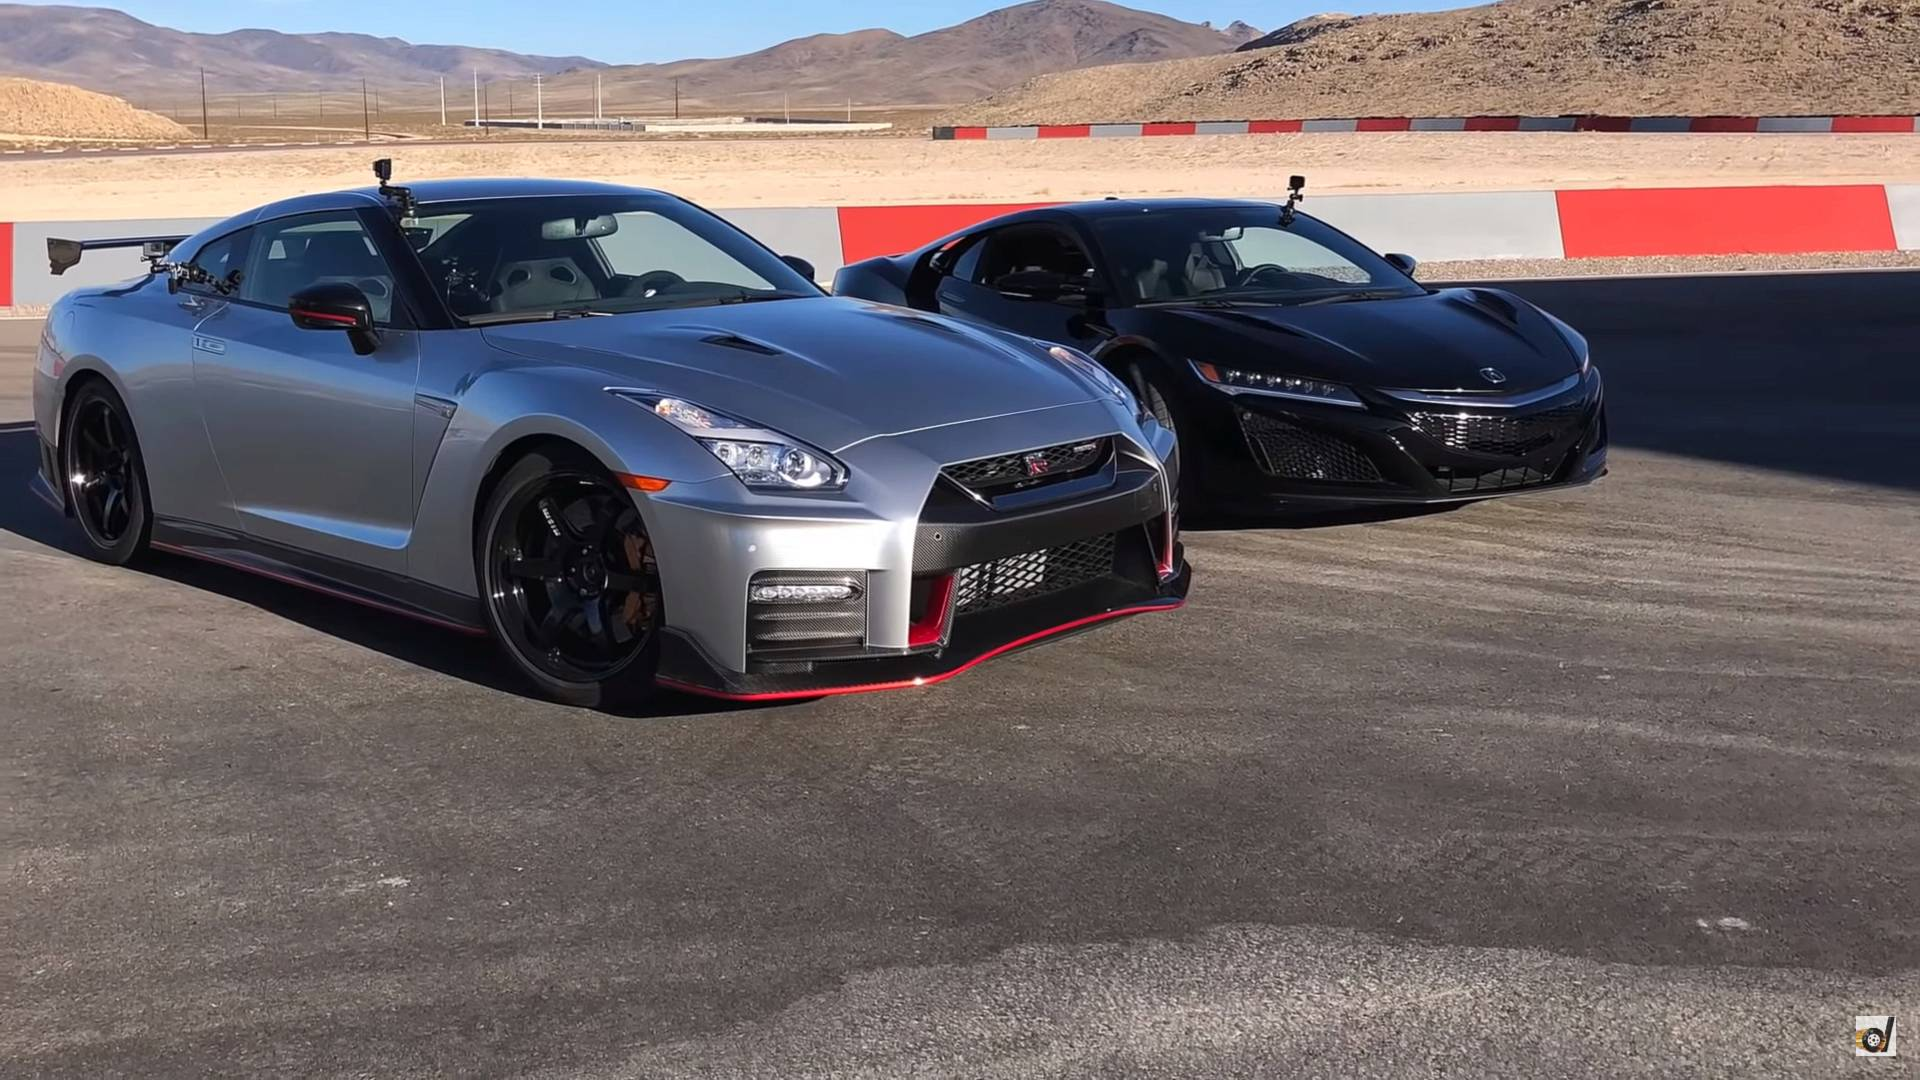 Acura Nsx Races Nissan Gt R Nismo For Japanese Supercar Supremacy